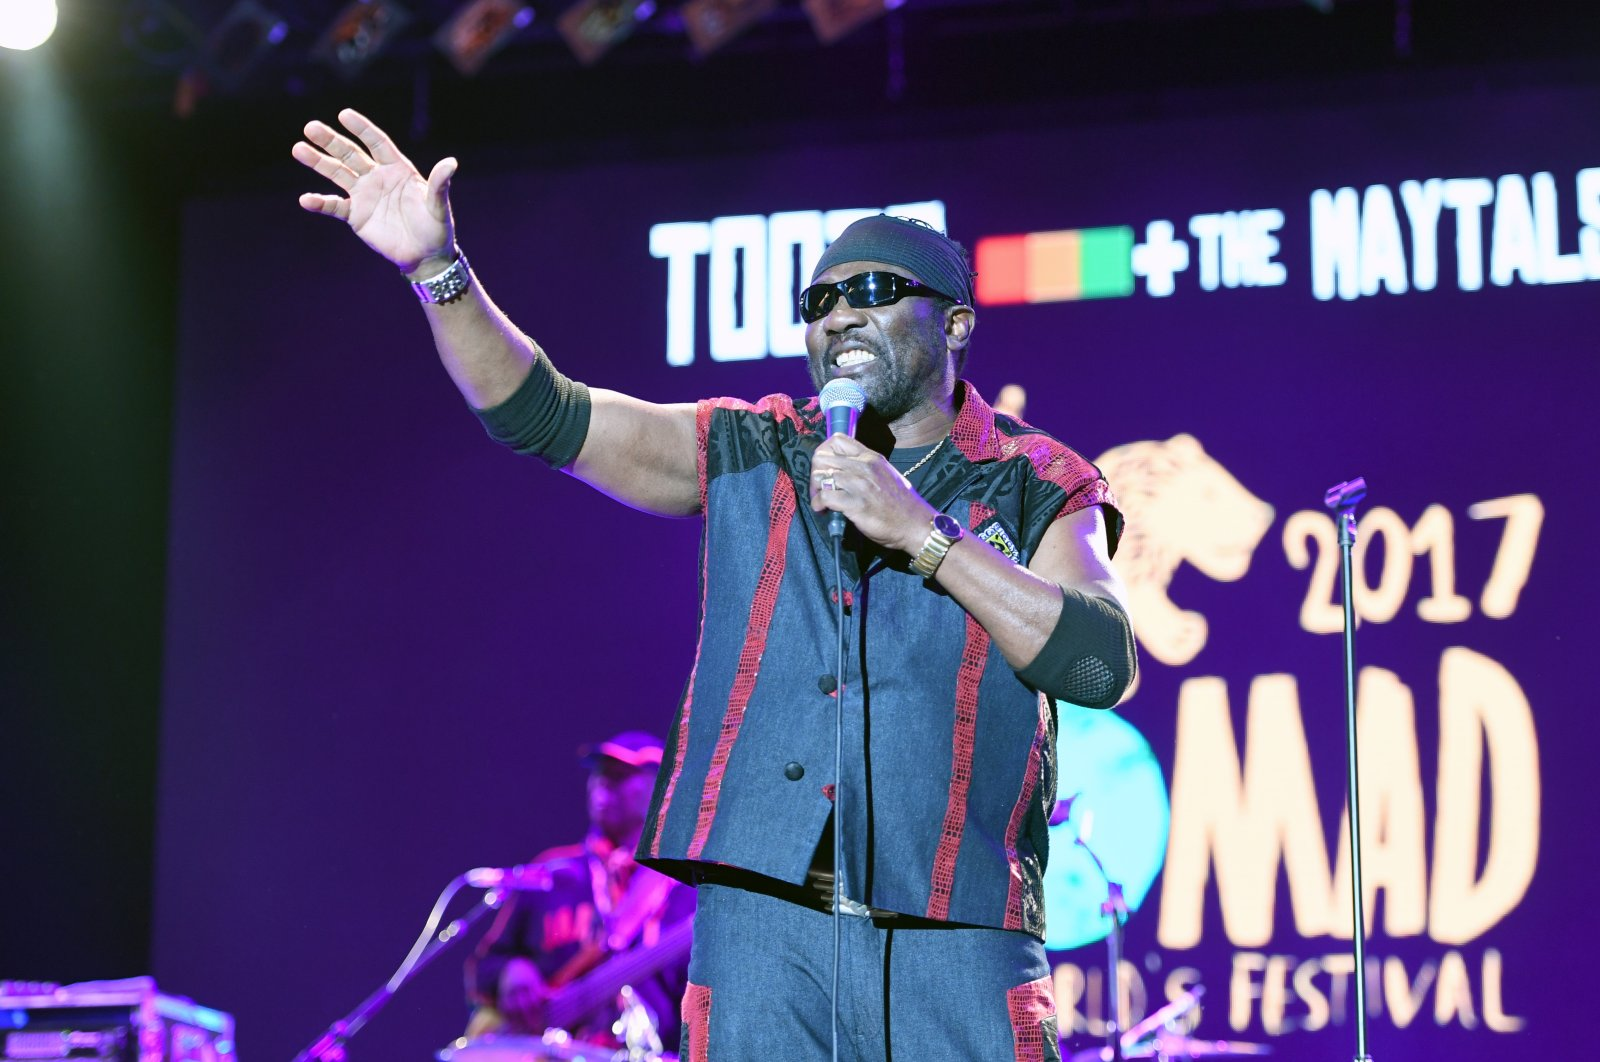 Jamaican singer Toots Hibbert of Toots and the Maytals performs at the Womad Festival at Charlton Park in Wiltshire on July 29, 2017 (Reuters Photo)